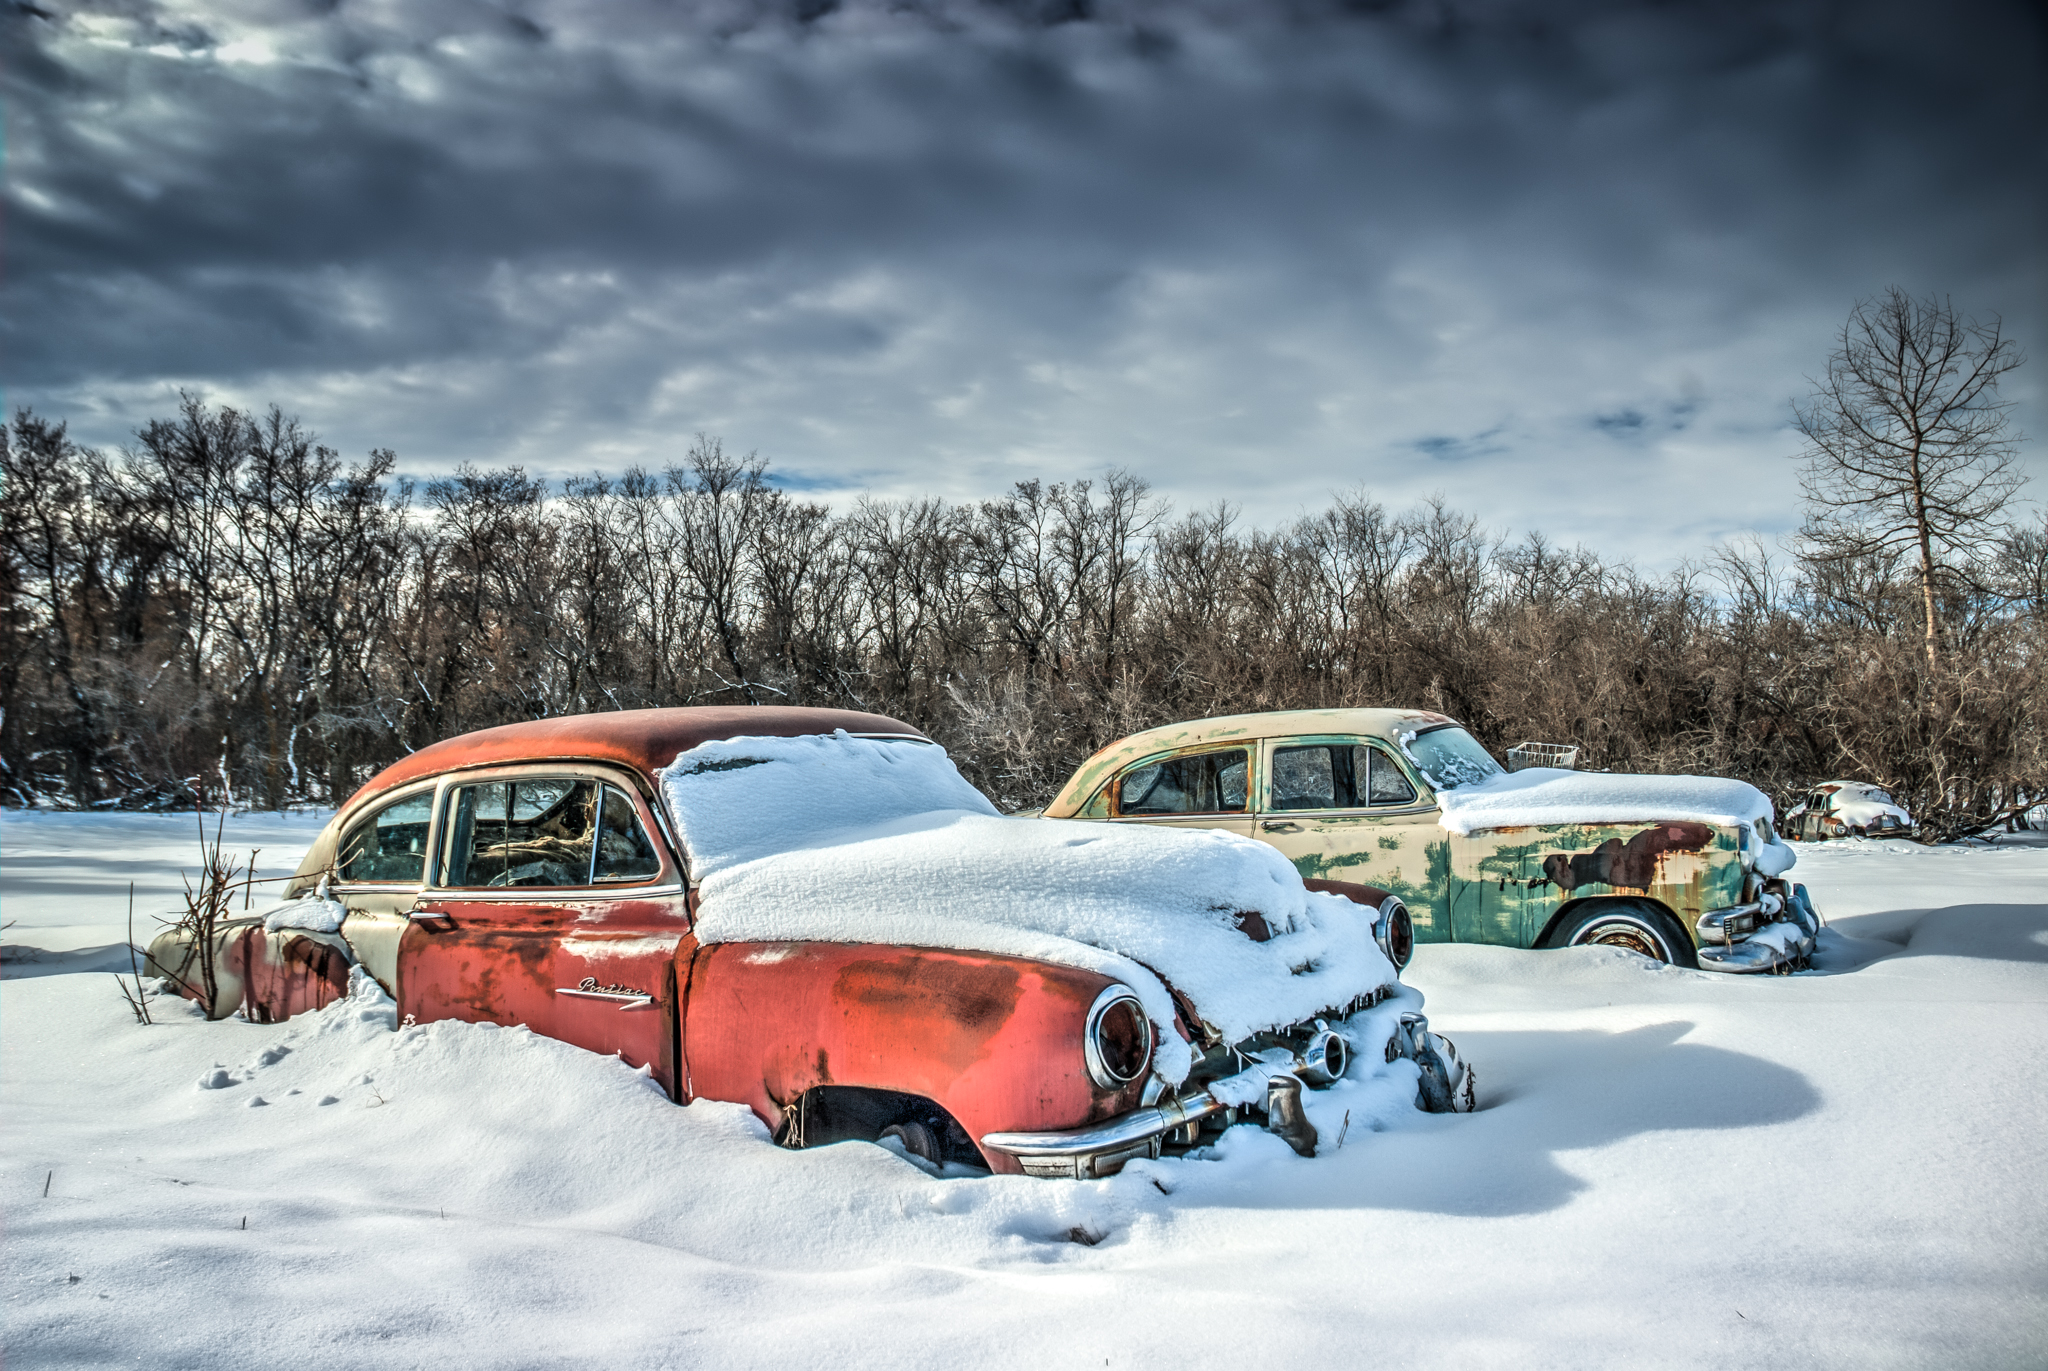 Snow Classics, Biofriendly Image of the Day